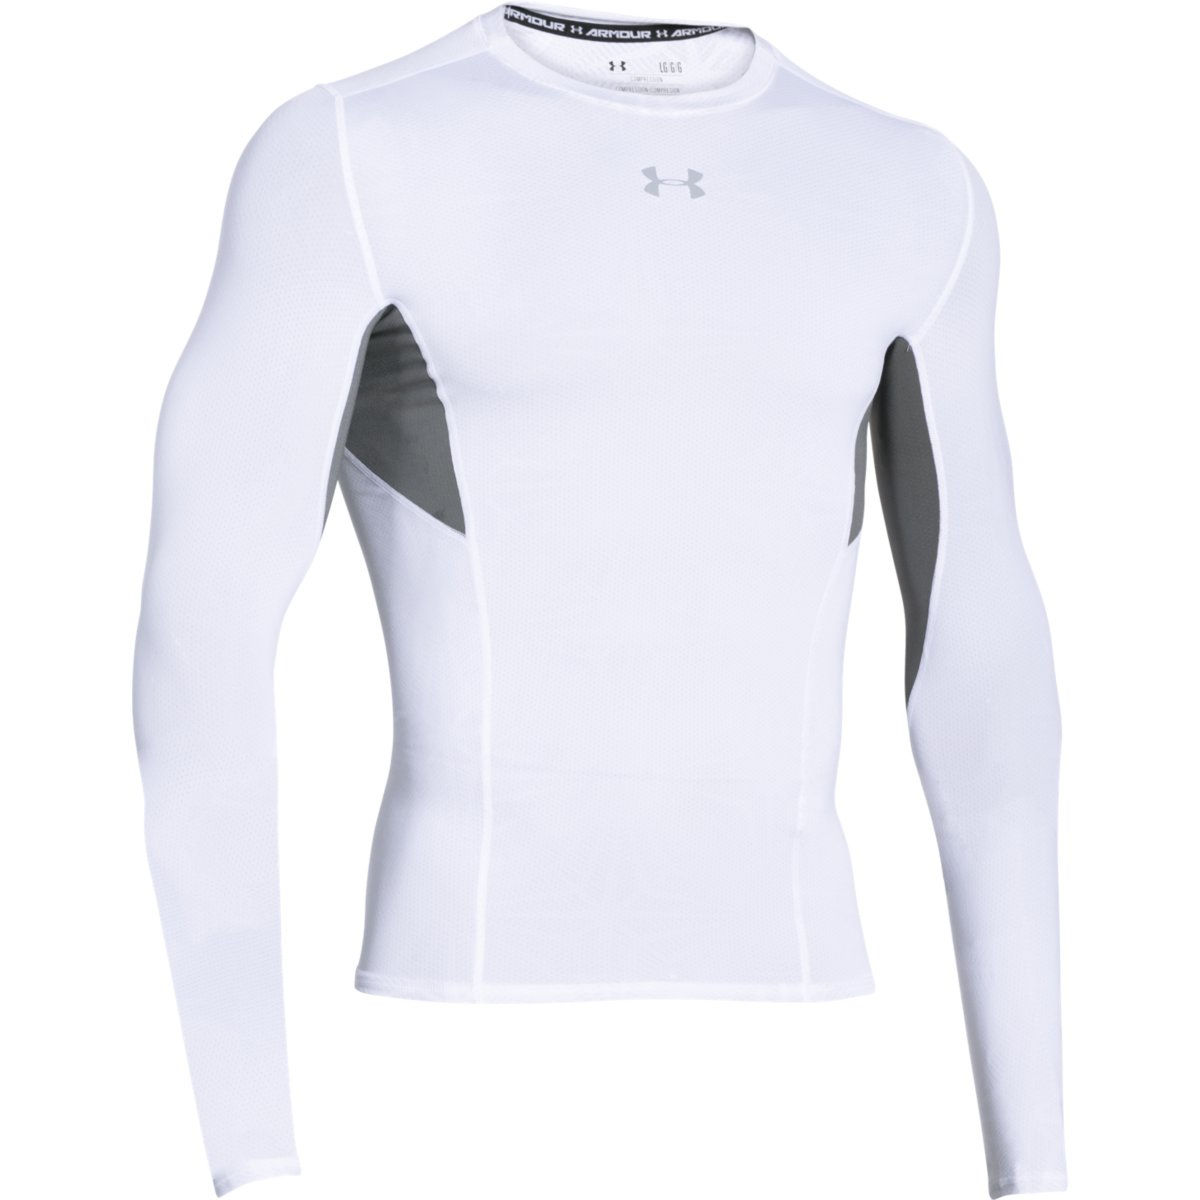 Wiggle under armour coolswitch long sleeve compression for Under armour heatgear white shirt